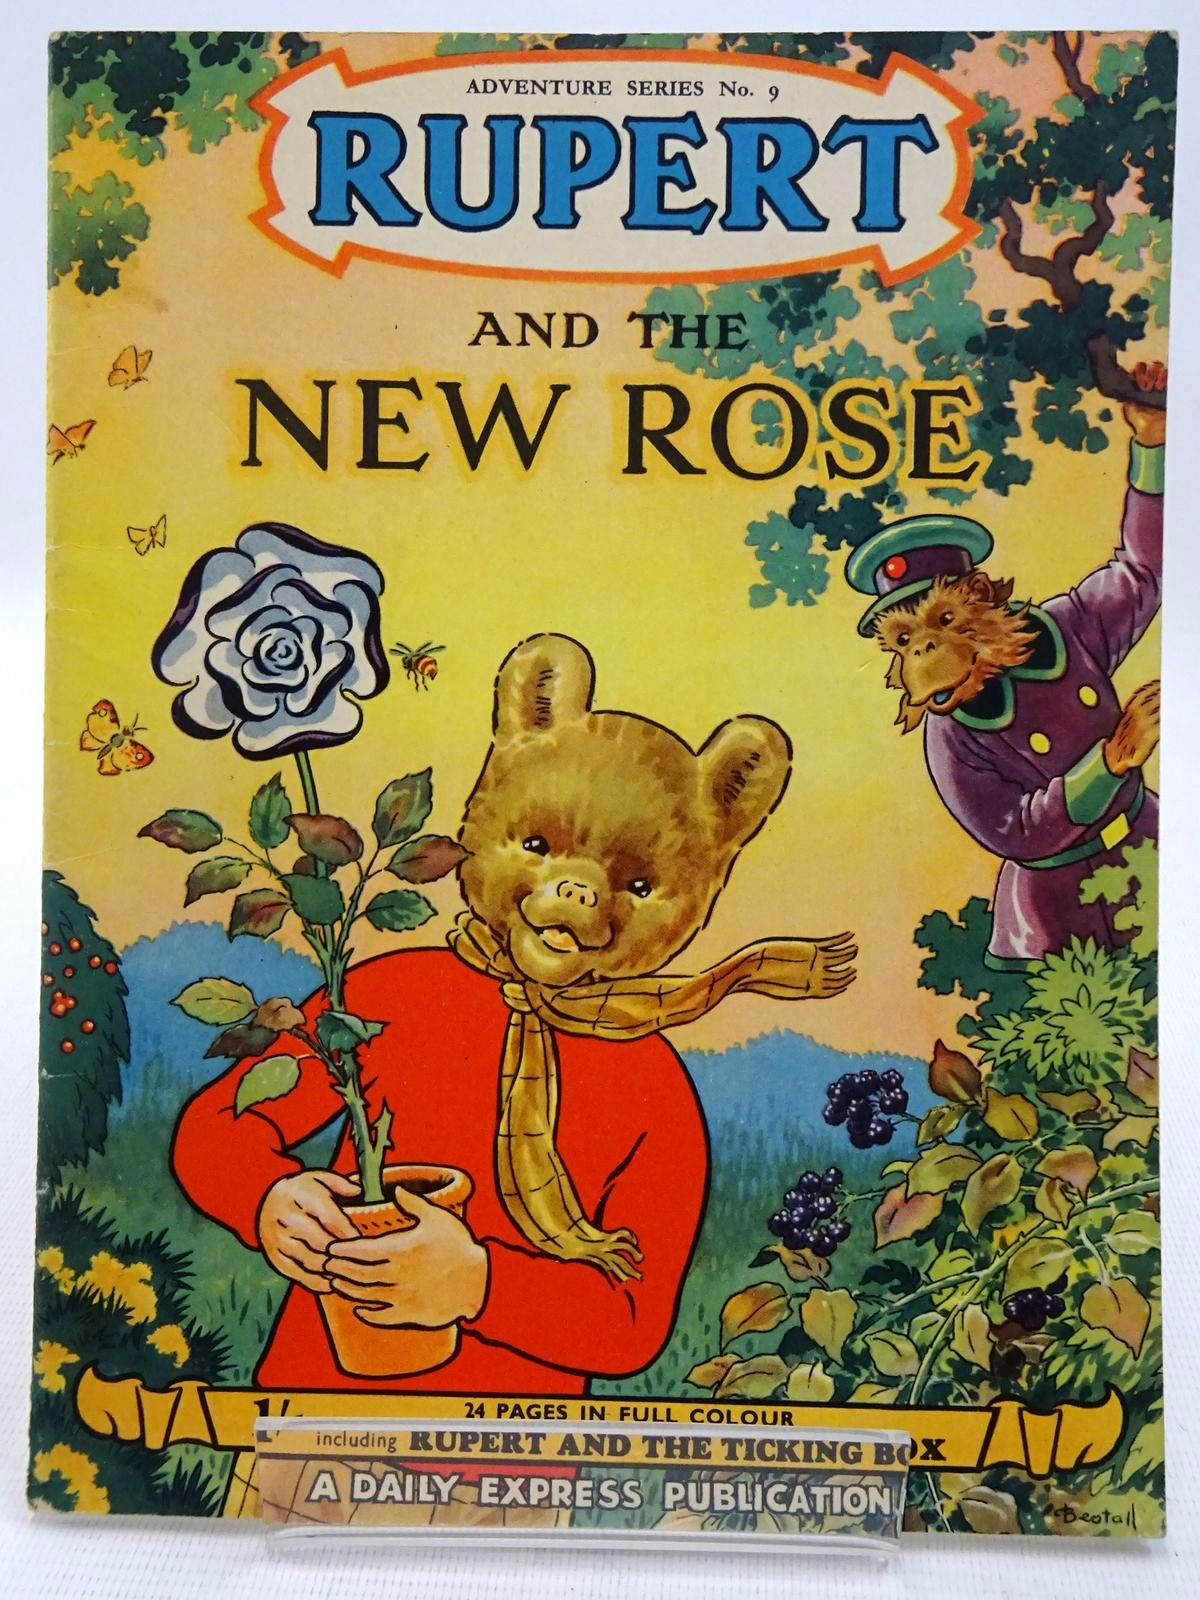 Photo of RUPERT ADVENTURE SERIES No. 9 - RUPERT AND THE NEW ROSE written by Bestall, Alfred illustrated by Bestall, Alfred published by Daily Express (STOCK CODE: 2128603)  for sale by Stella & Rose's Books